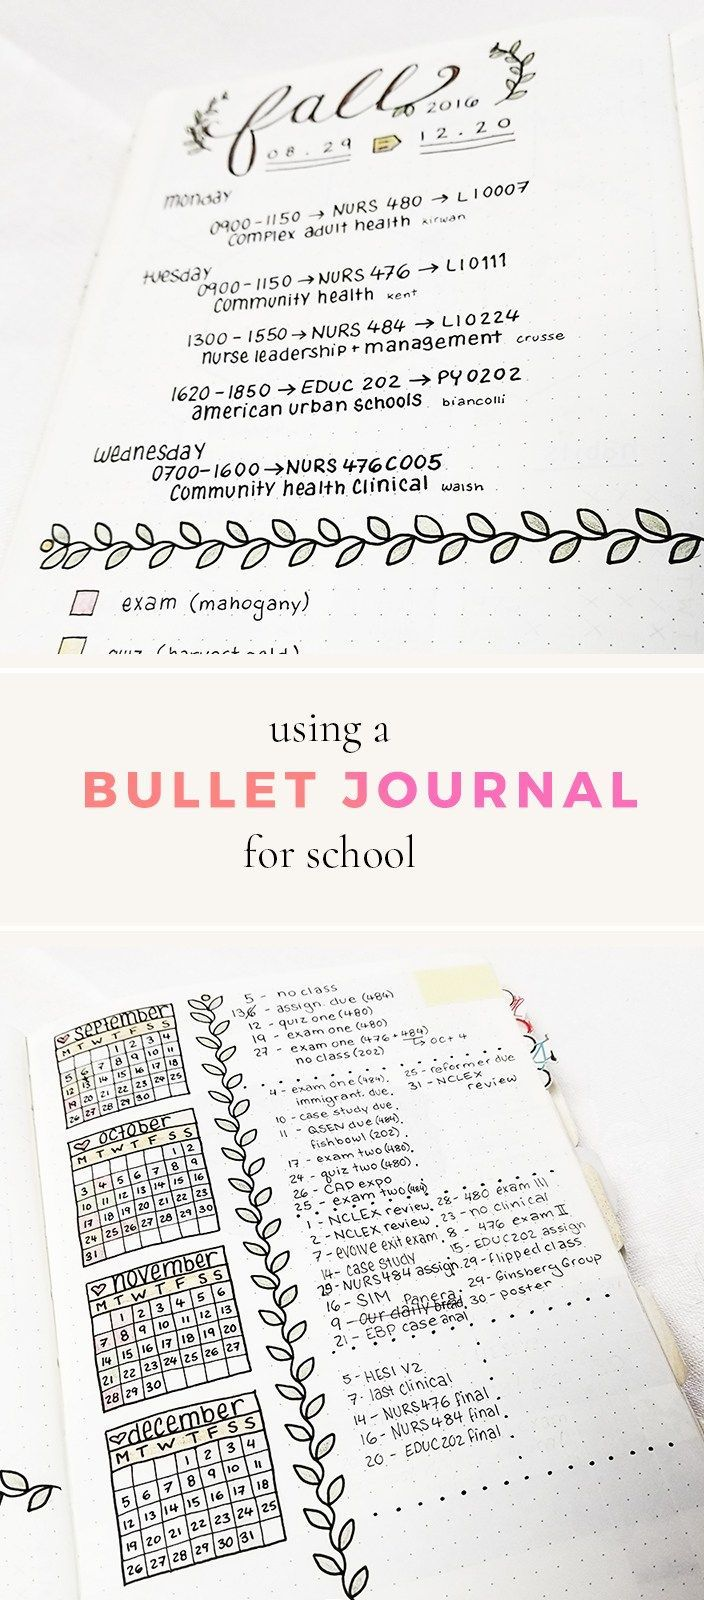 Bullet Journal for School -- setting yourself up for success with your planner or bullet journal this semester!